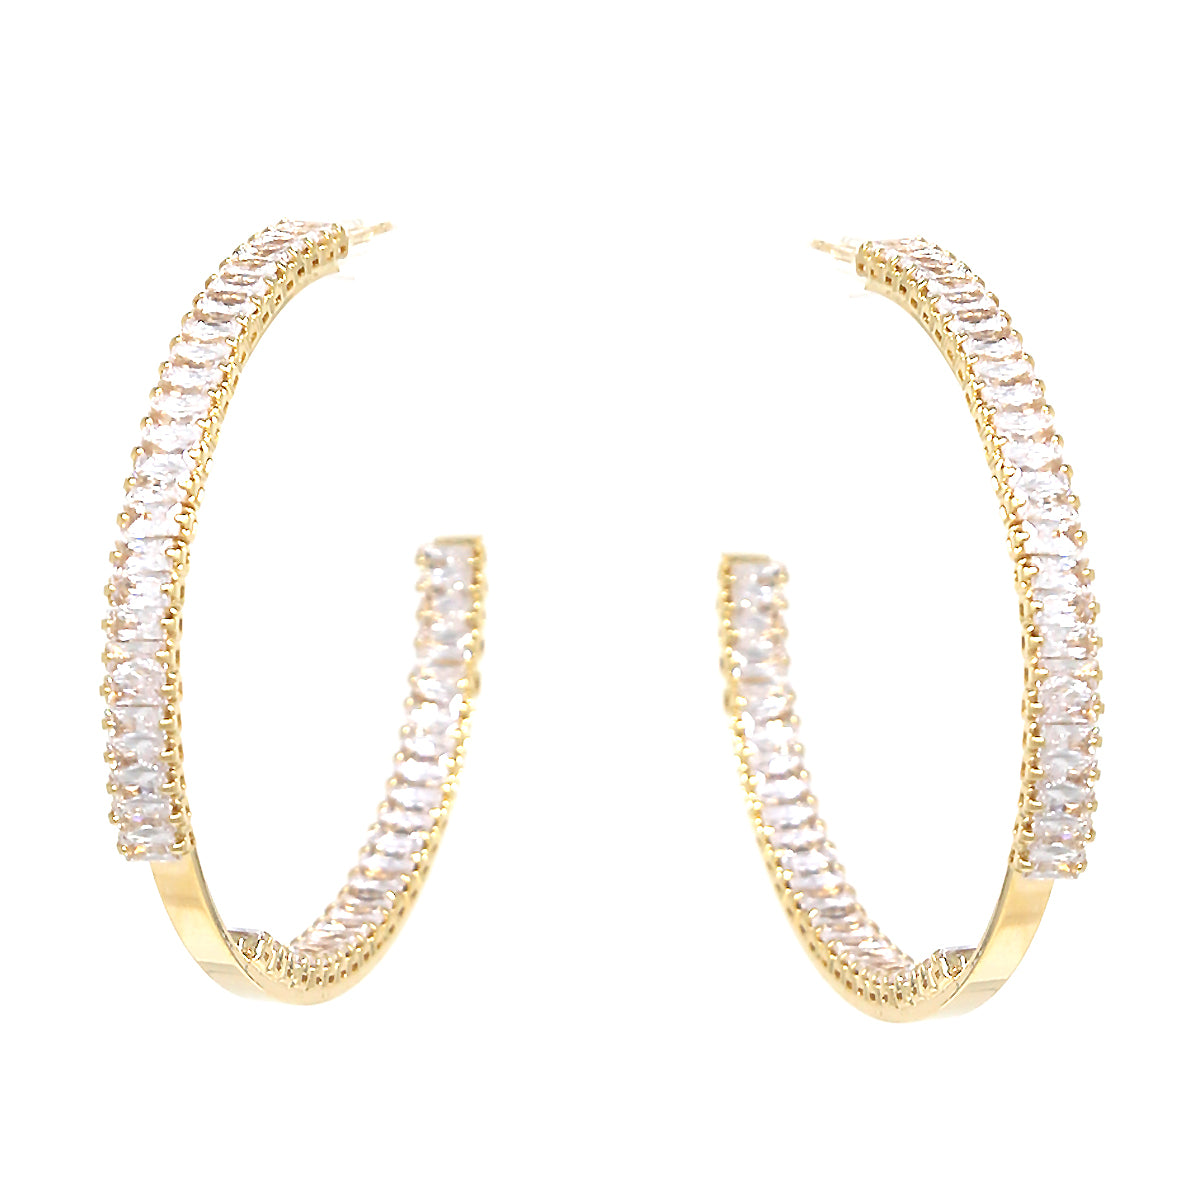 Emerald Cut CZ Pave Inside-Out Hoop Earrings (50 mm)